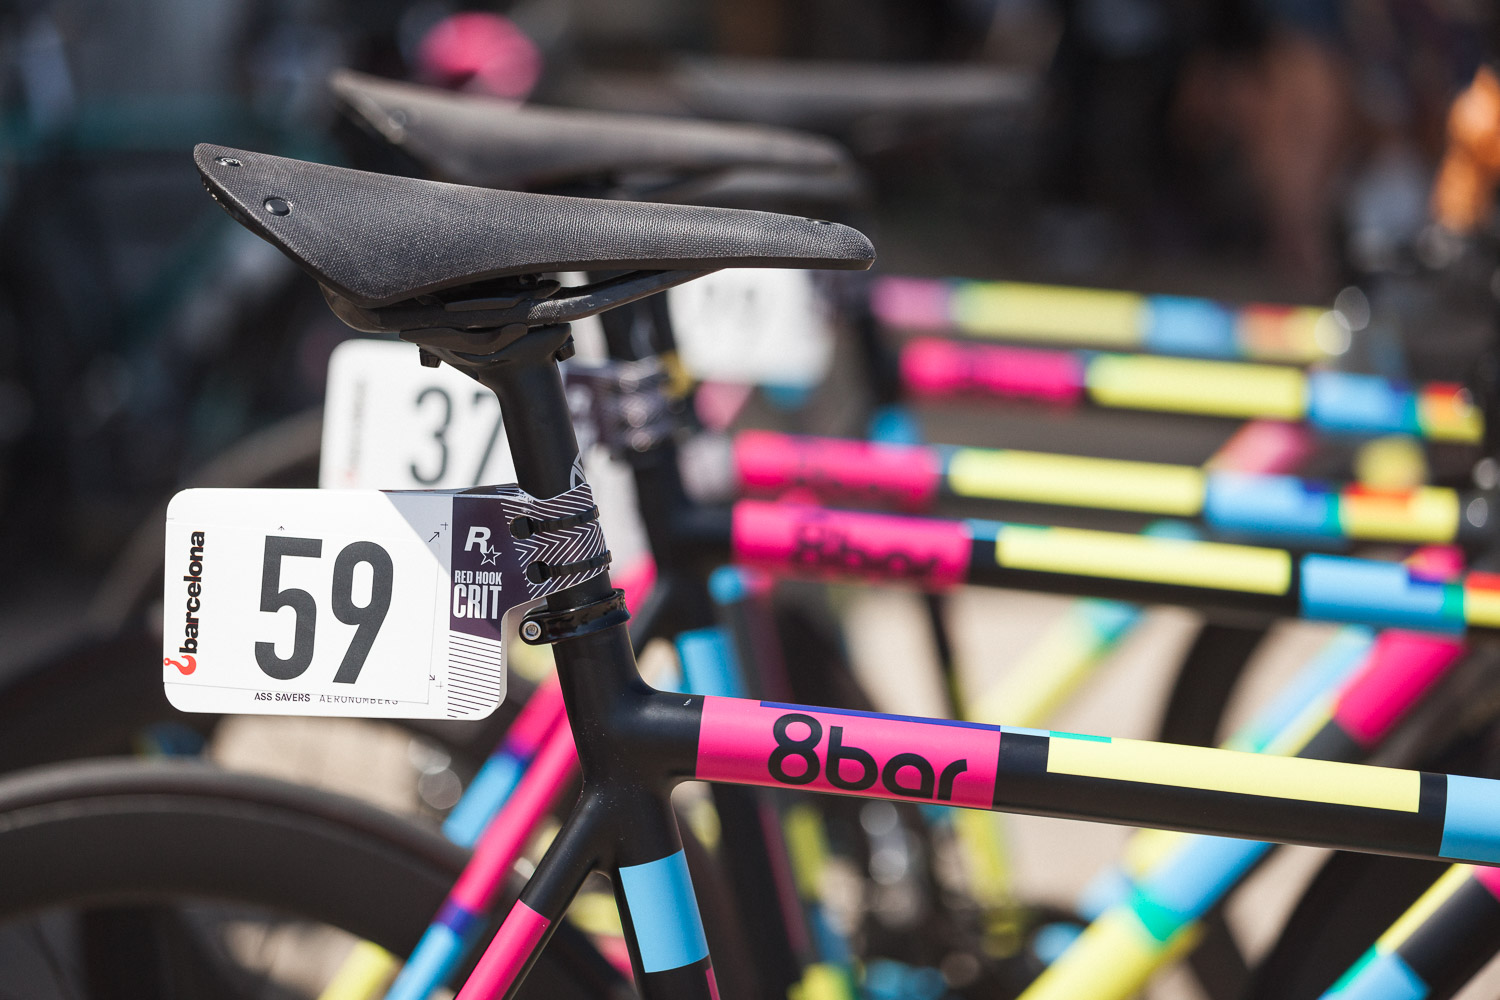 8bar-team-red-hook-crit-barcelona-fixie-fixed-gear-14